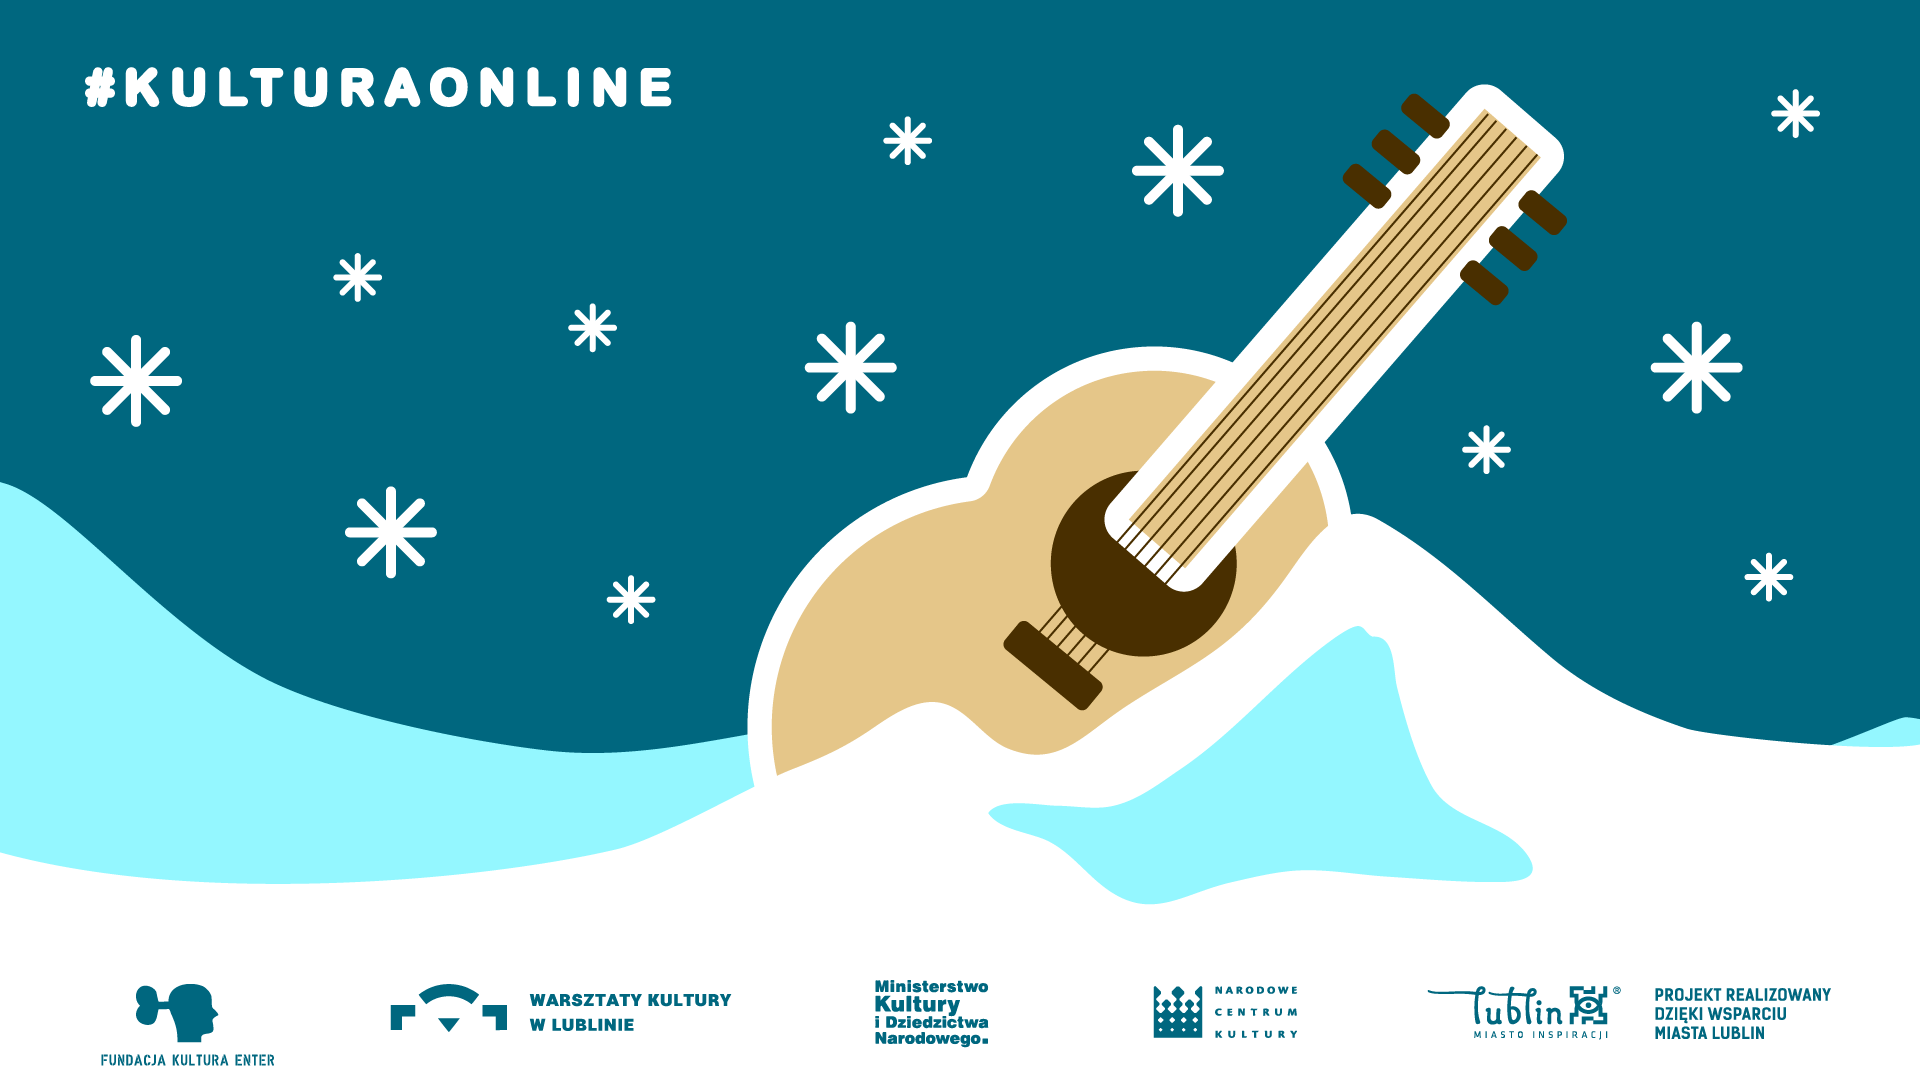 """image promoting the event, a blue sky with snowflakes, light blue icy mound with an ukulele buried in it, the word """"kulturaonline"""" in the top-left corner and logos of the organisers in the bottom-centre"""